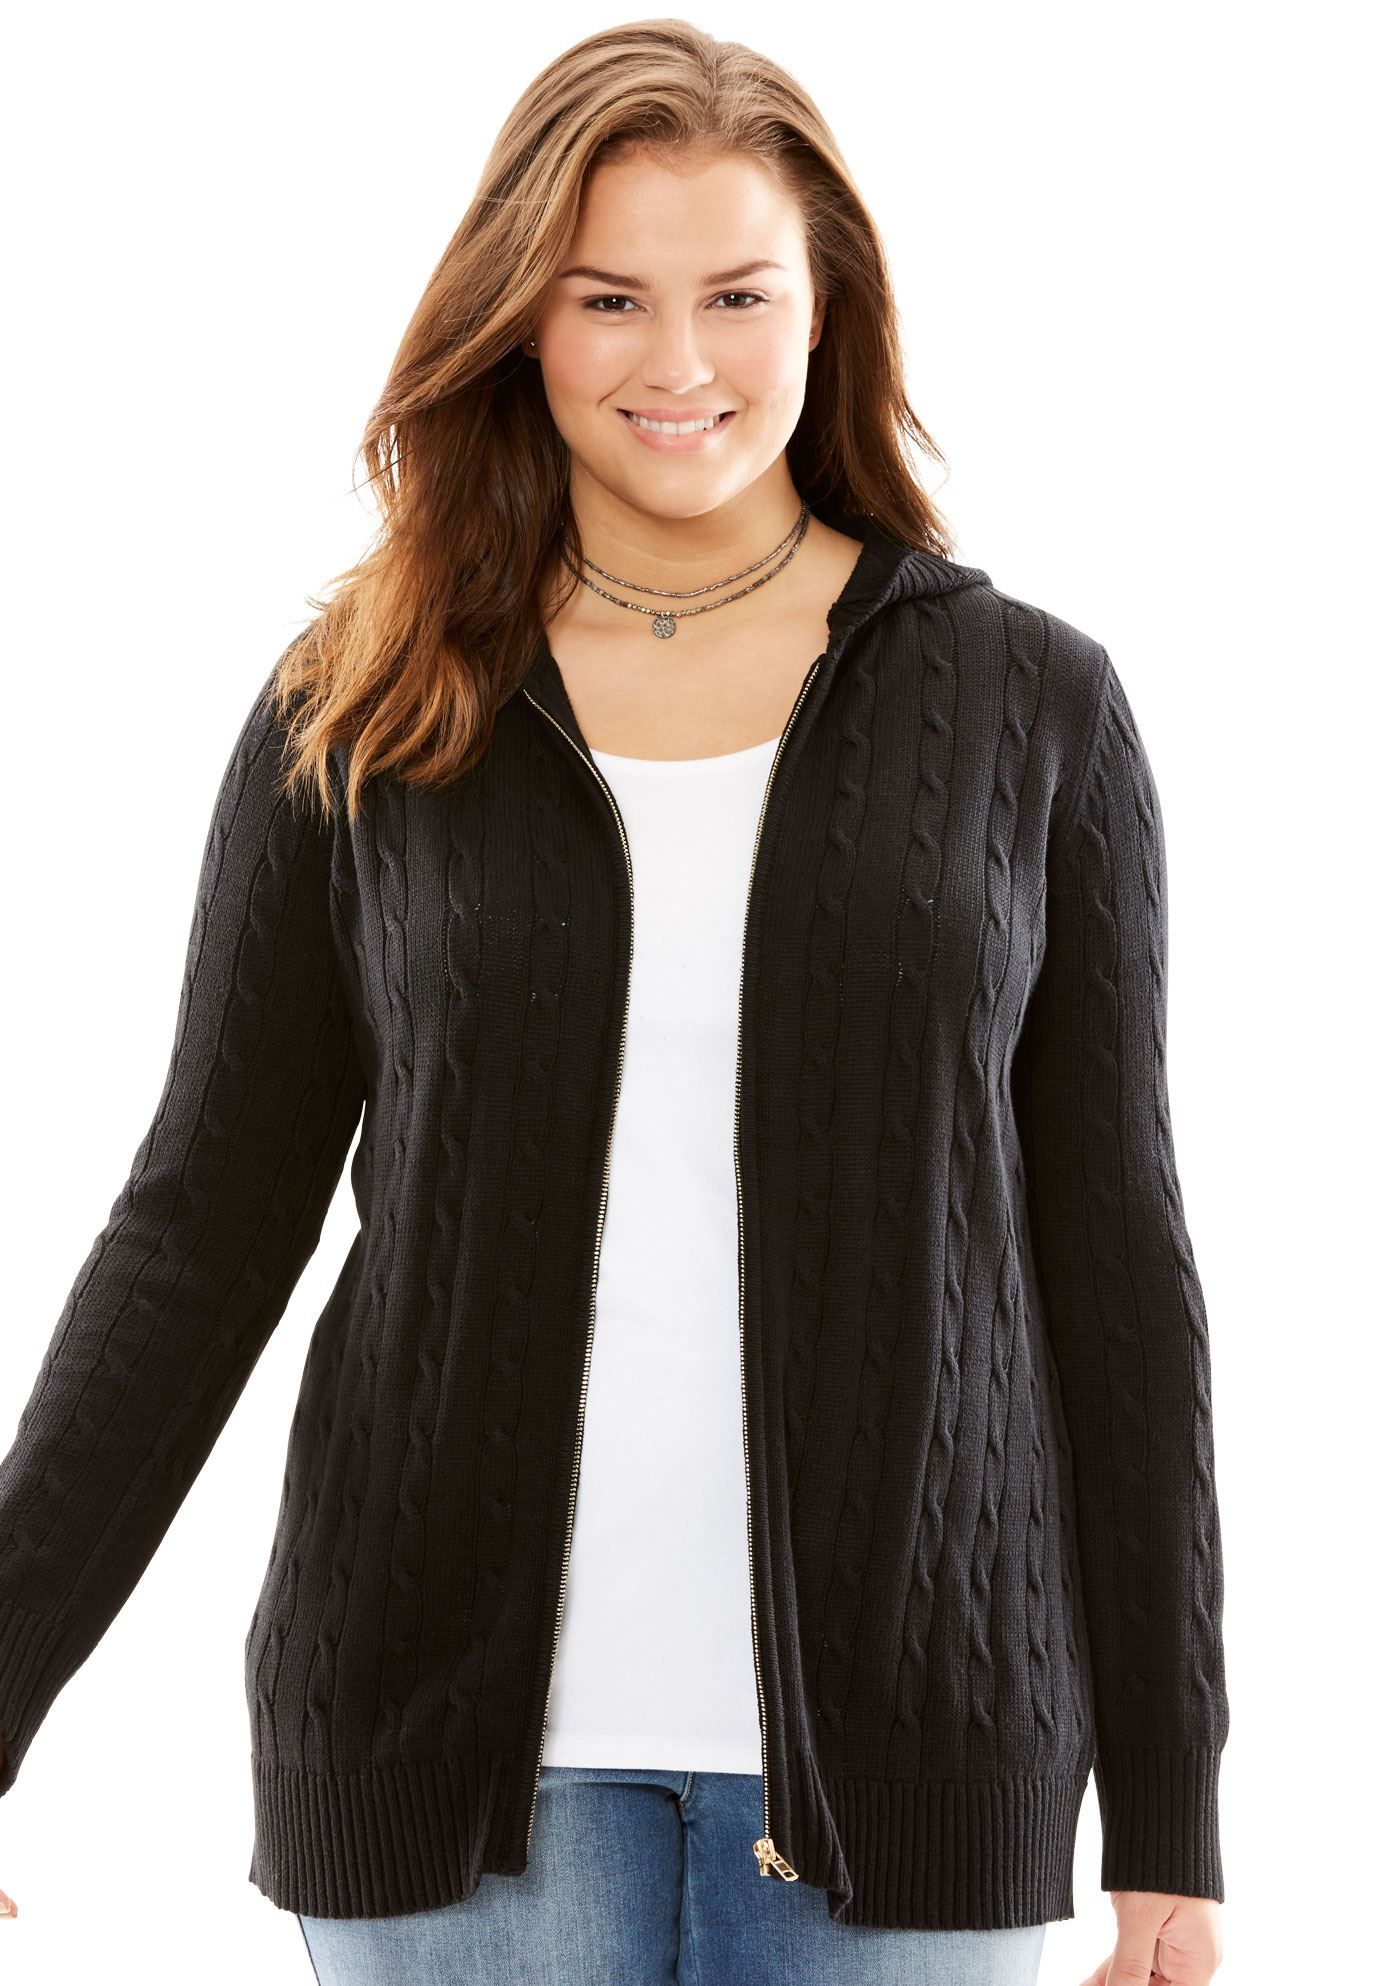 0404219ee4e7da Cable Knit Zip-Front Cardigan - Women's Plus Size Clothing ...